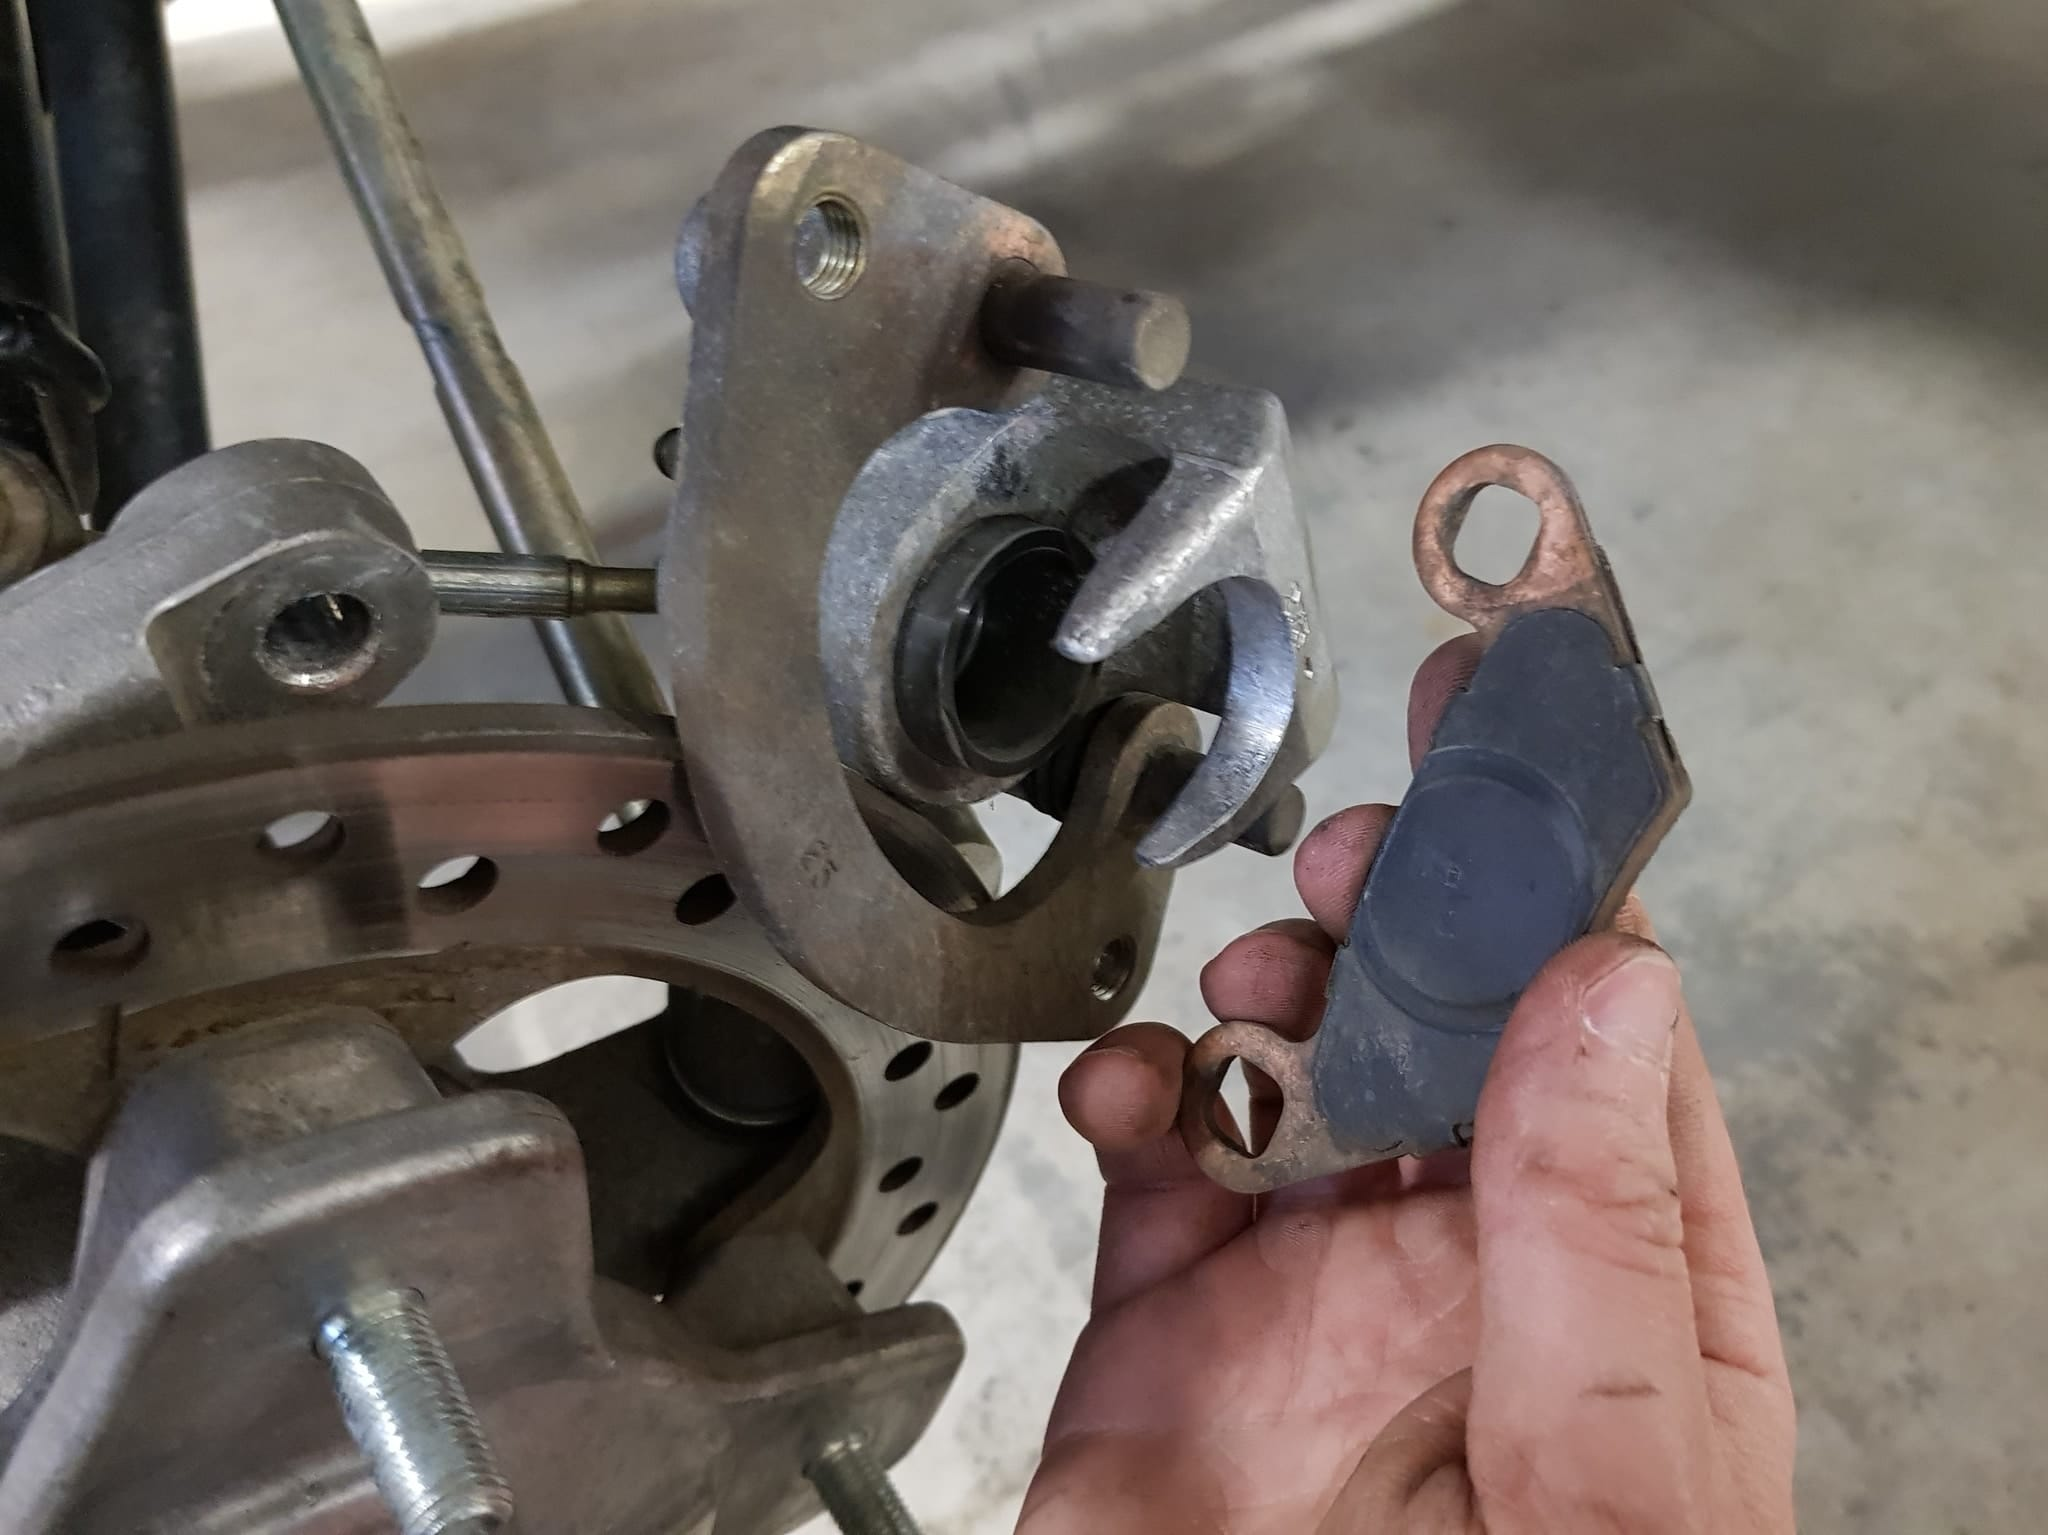 12 Reasons Why Your ATV Brakes Won't Build or Hold Pressure